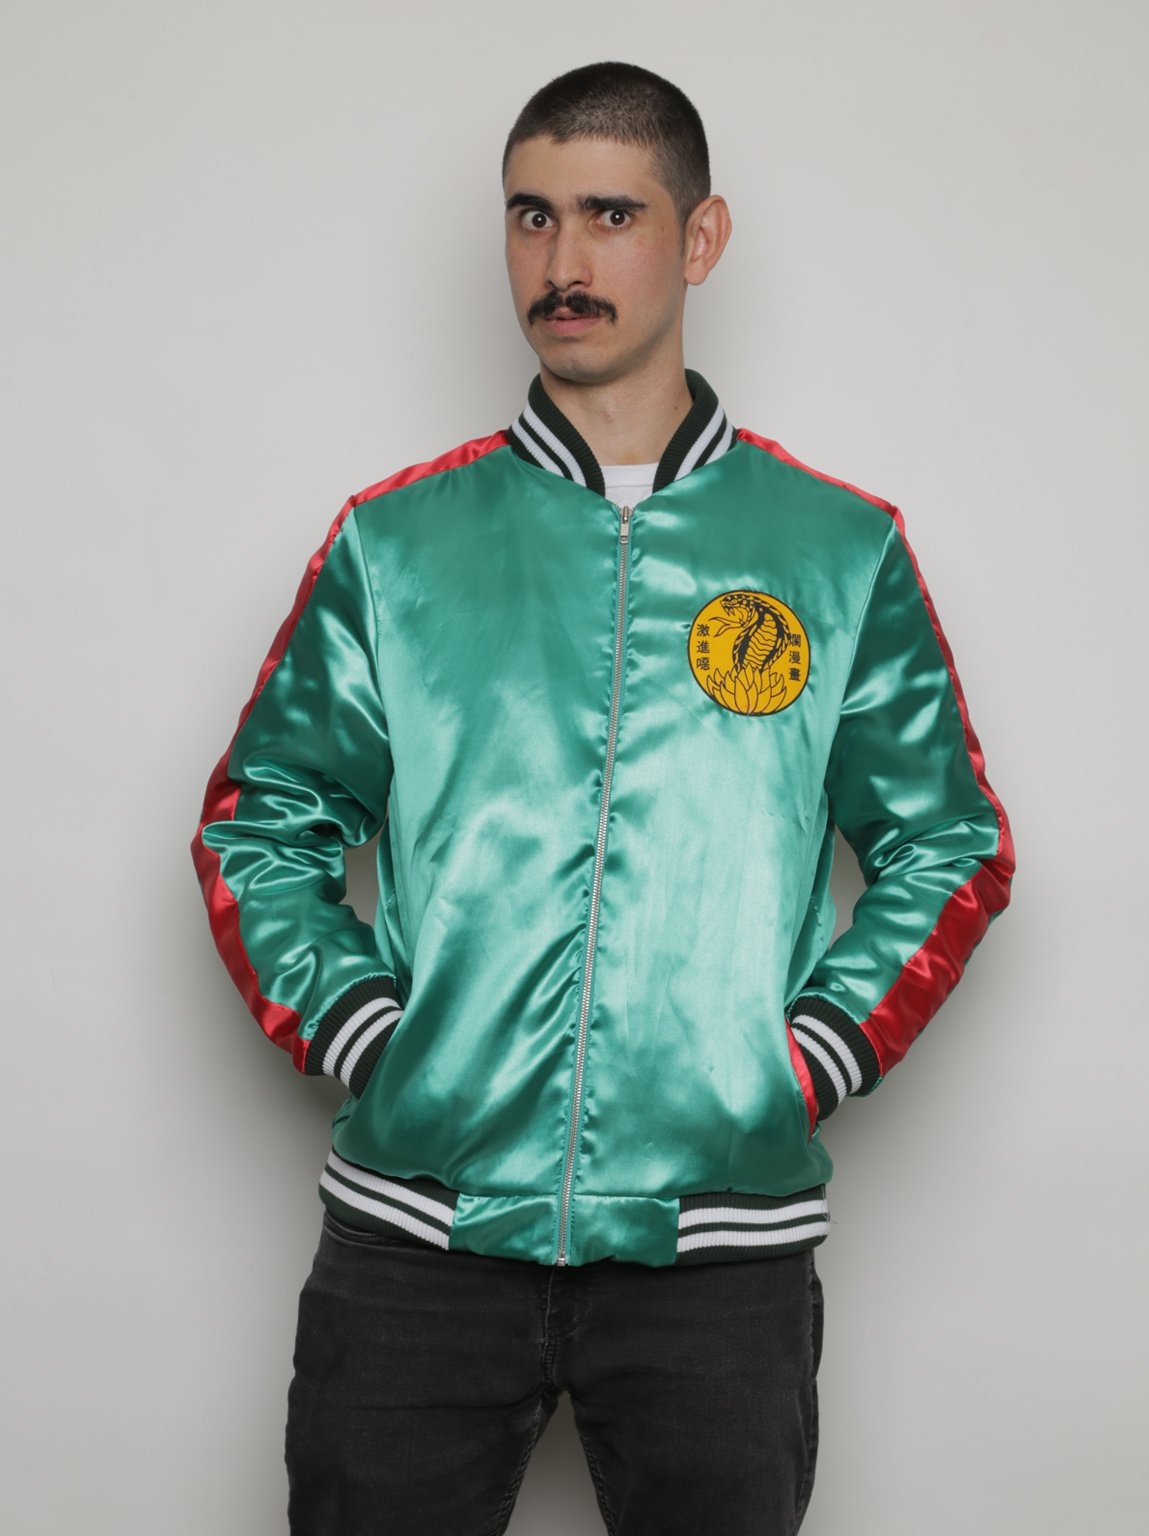 Souvenir War Jacket Green